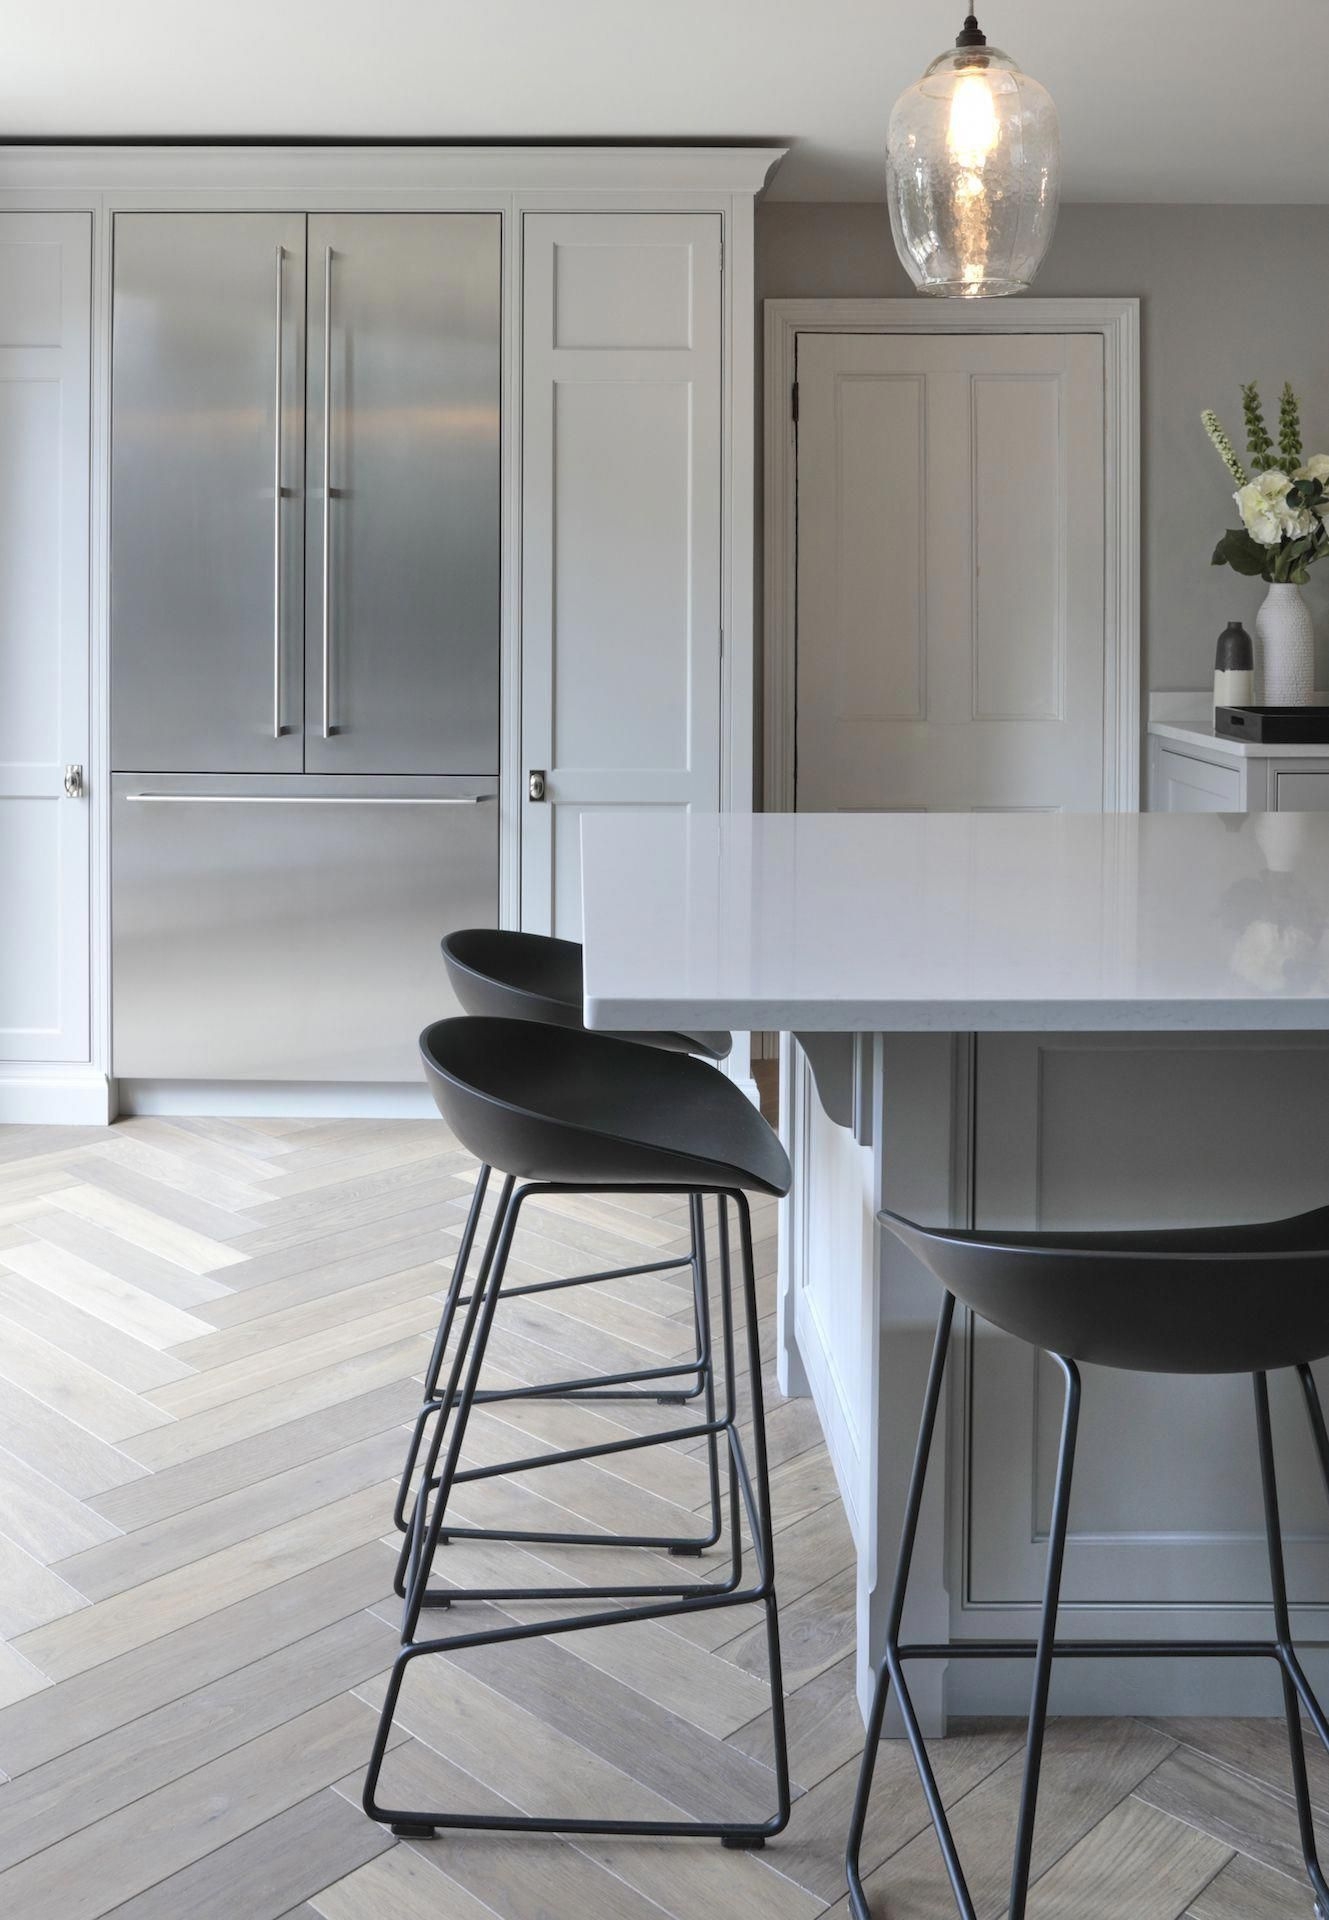 Kitchen Flooring Ideas Let's check out the materials